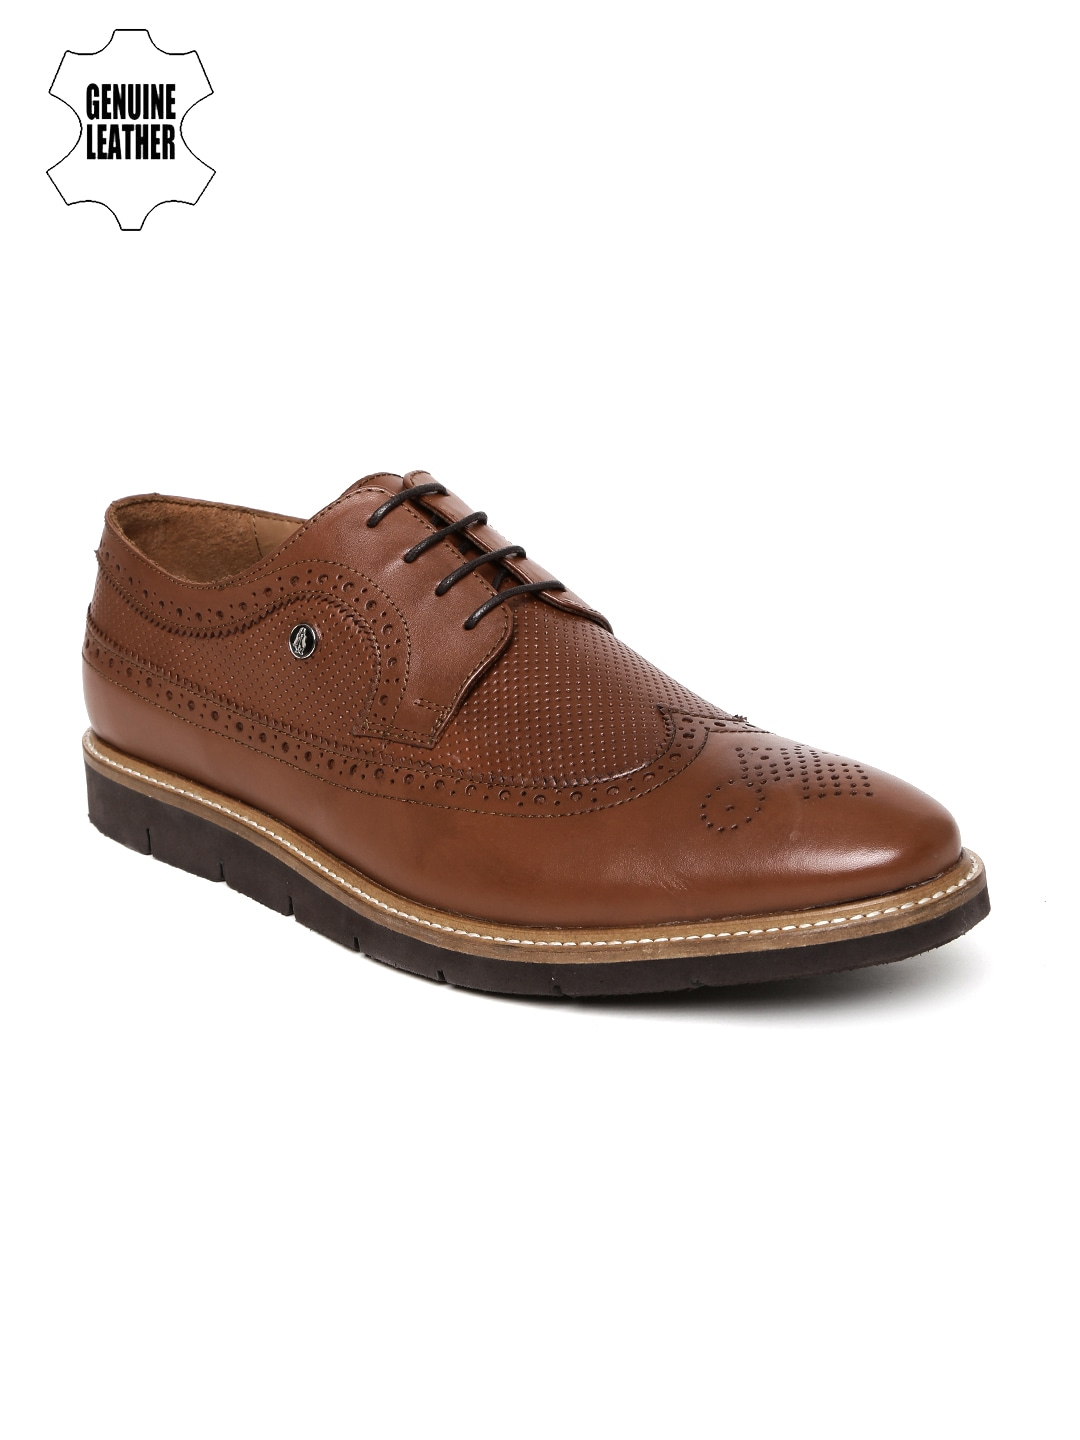 Hush Puppies Men Tan Genuine Leather Brogues image